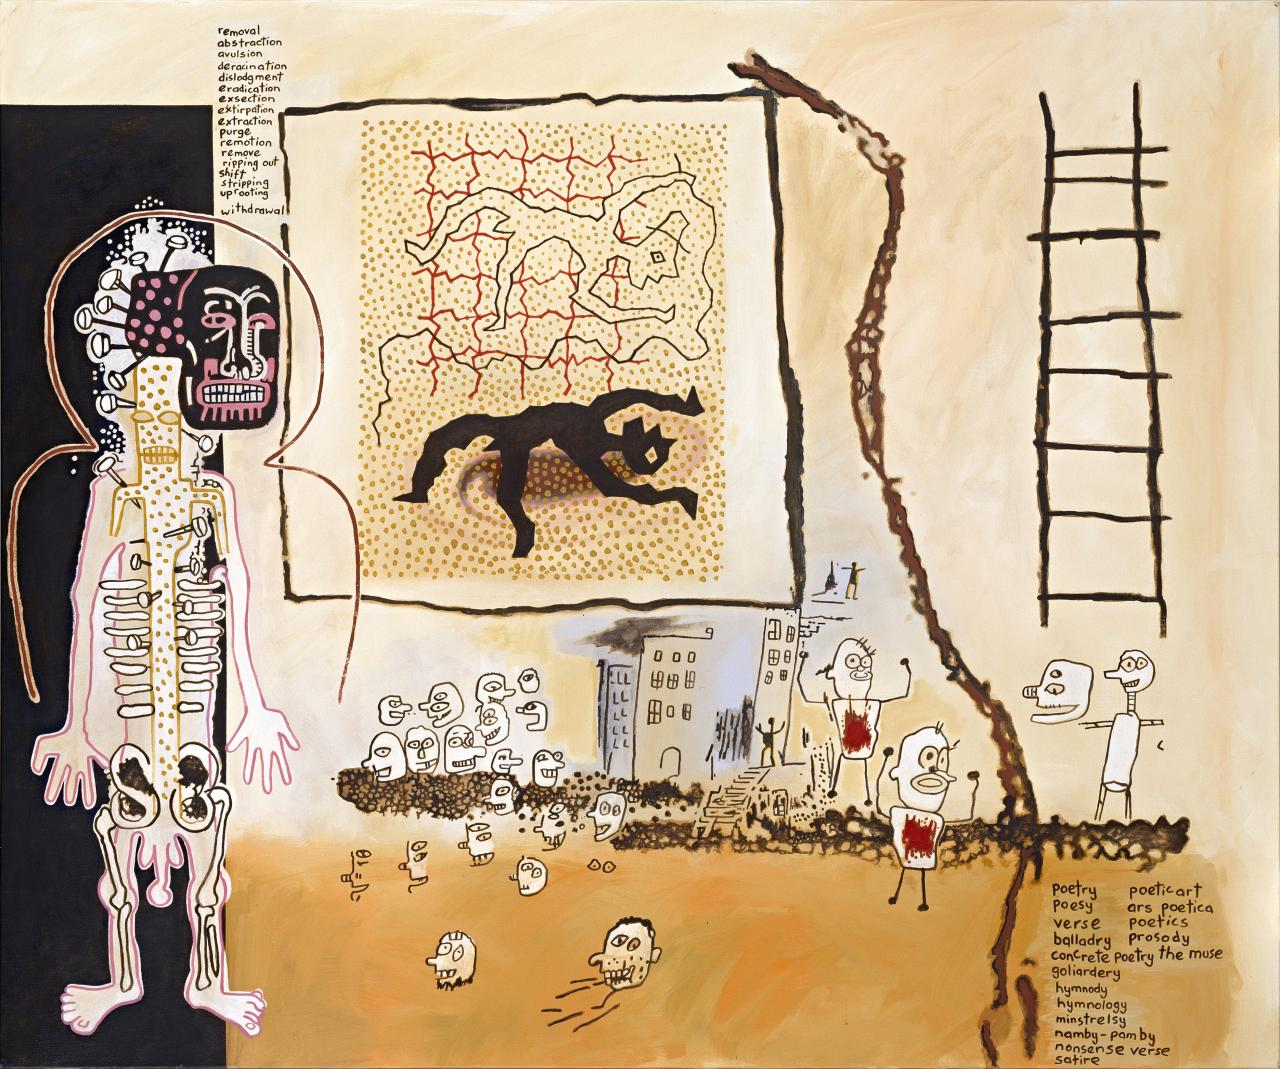 Notes to Basquiat: Poet and Muse